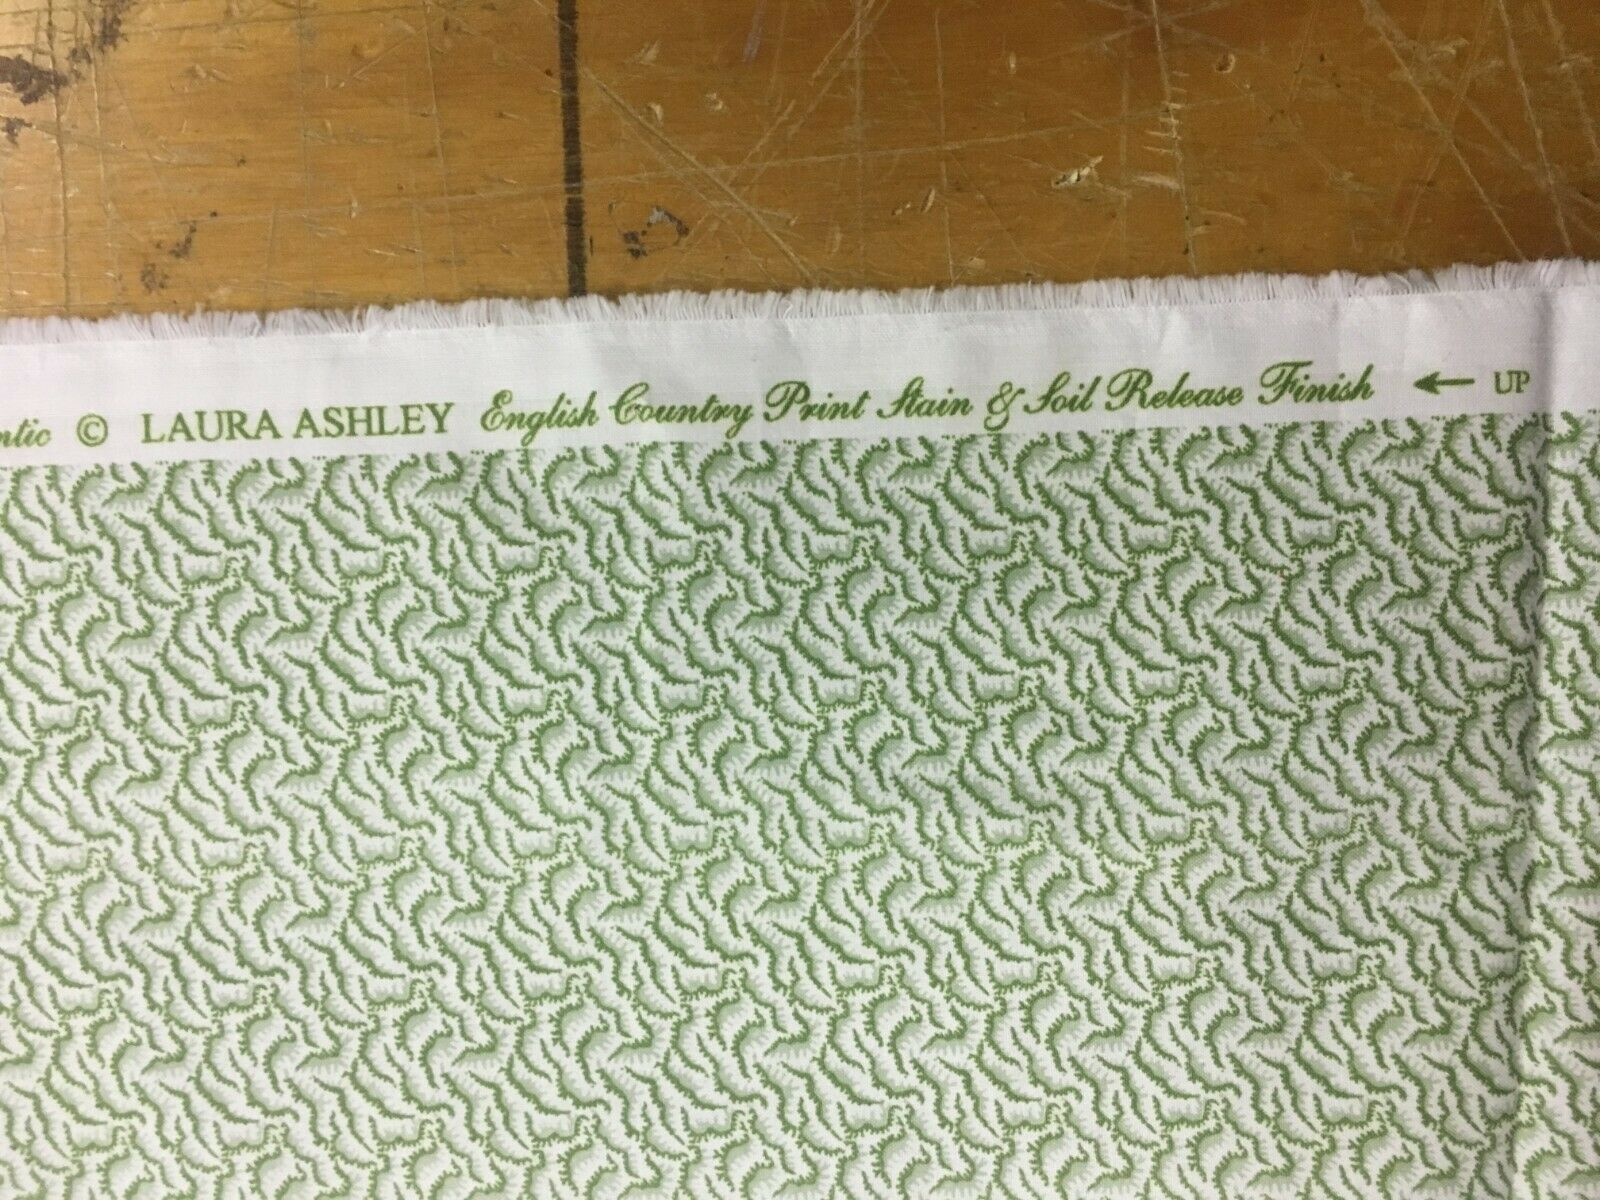 Laura Ashley English Country Print Green Small Pattern Upholstery Fabric 1 yd